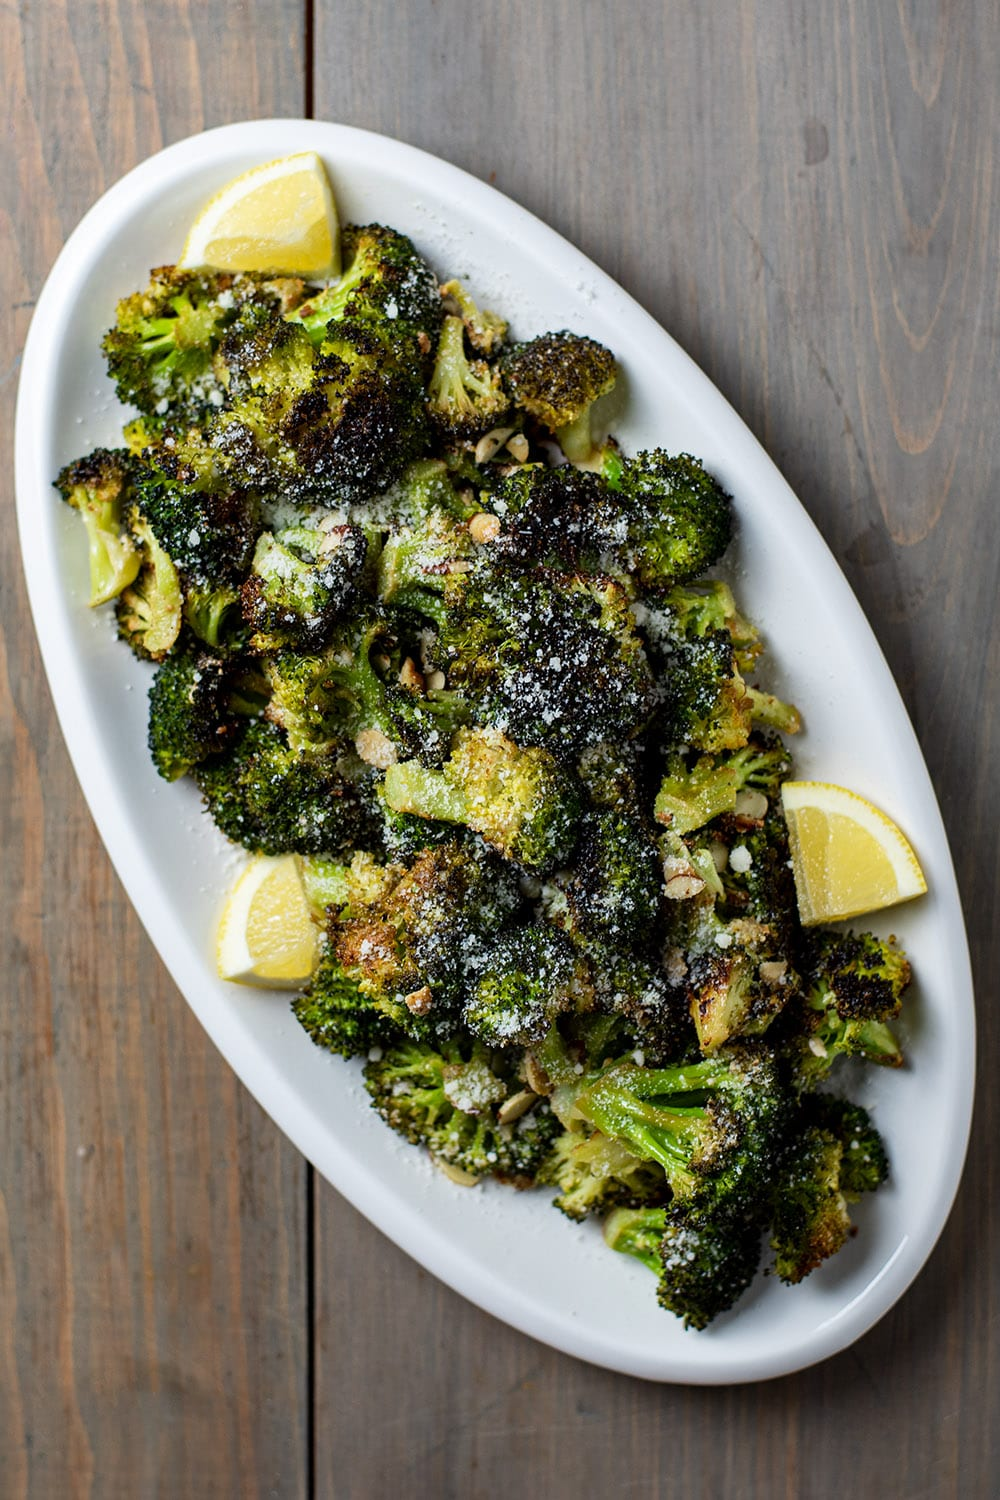 Roasted Broccoli with Lemon and Parmesan Recipe